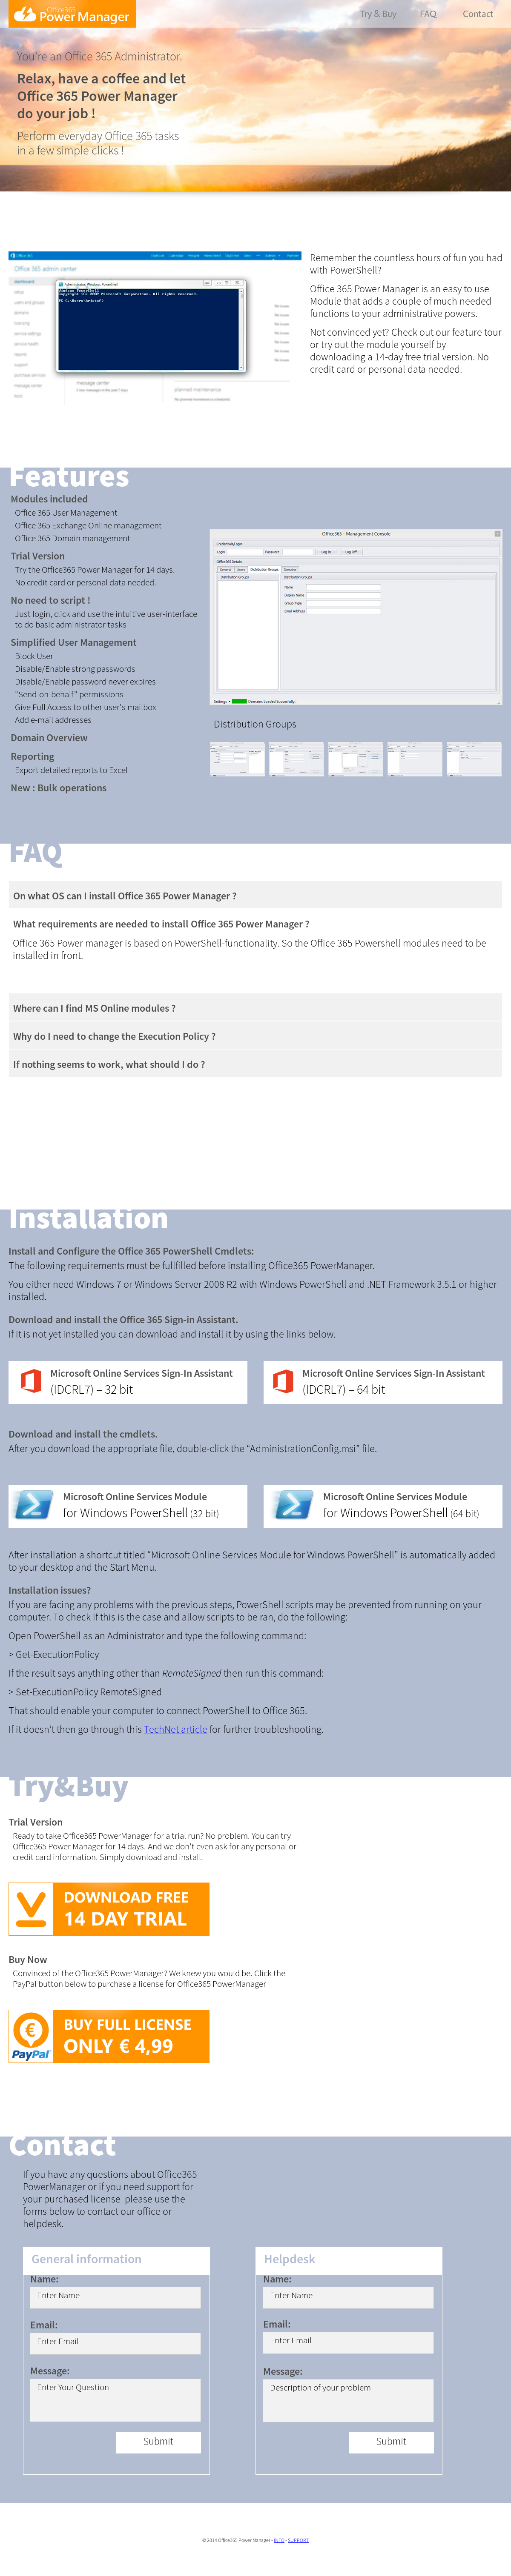 Office365 Power Manager Competitors Revenue And Employees Owler Remote Website History